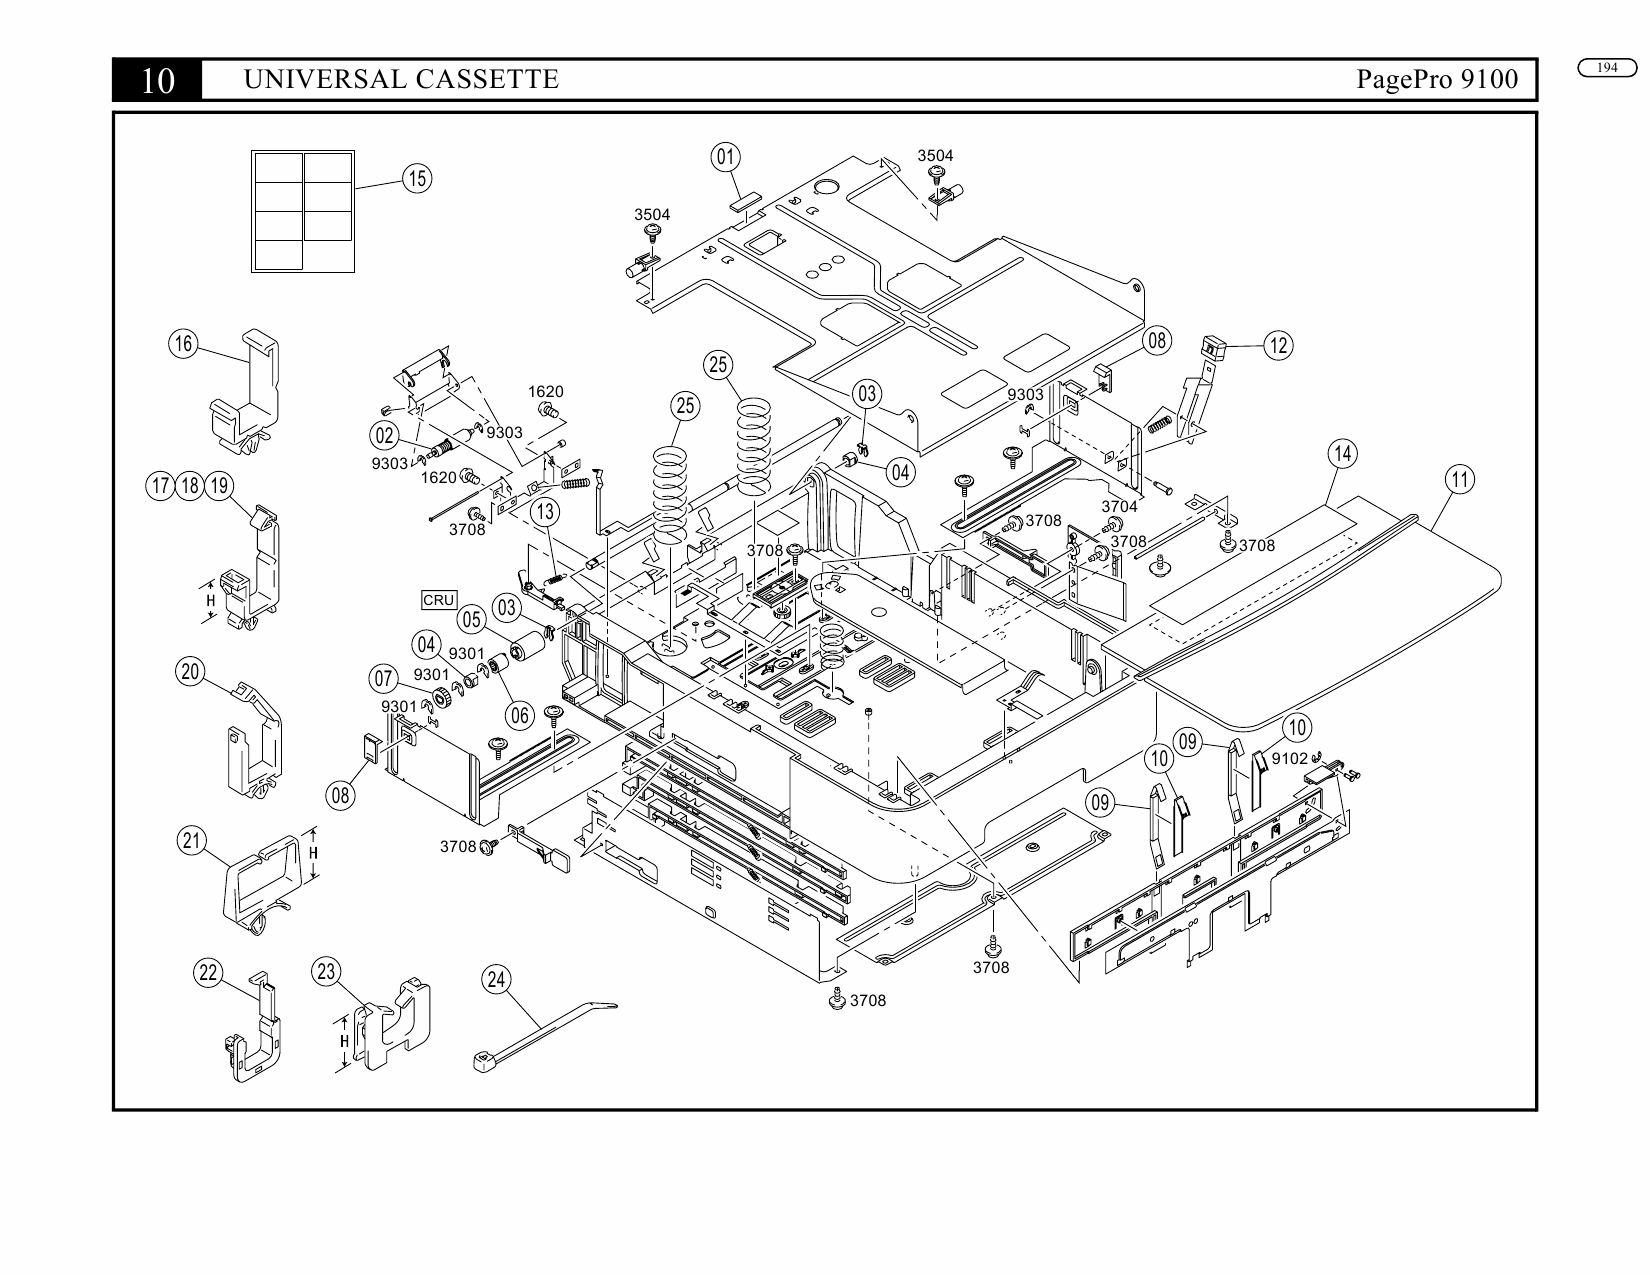 Konica-Minolta pagepro 9100 Parts Manual-4